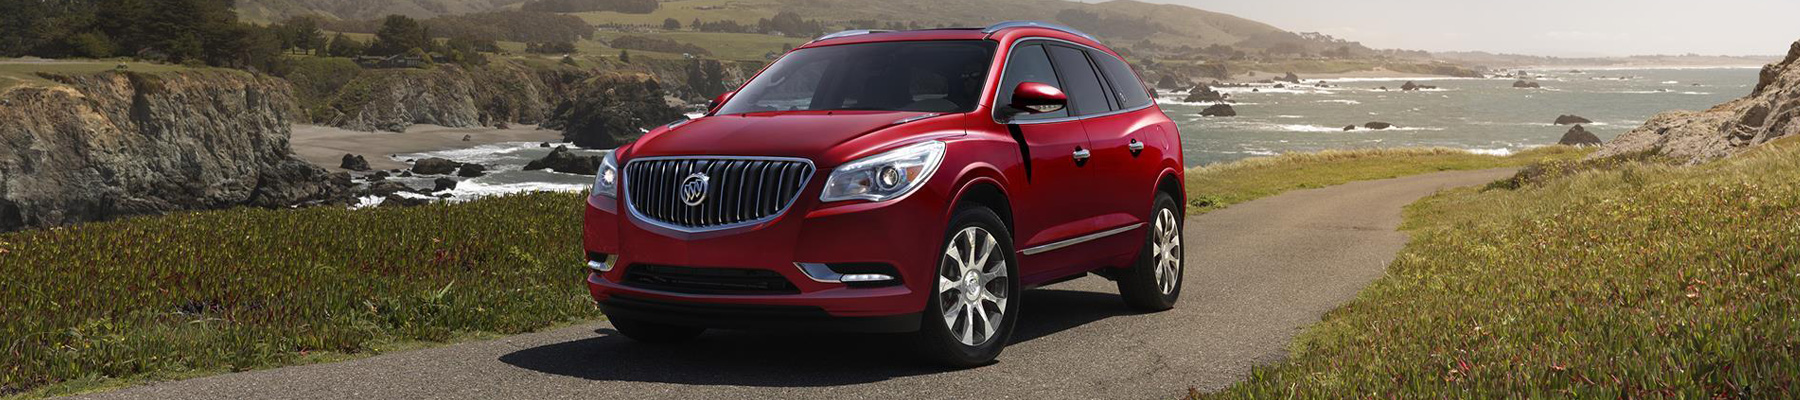 2017 Buick Enclave in Vancouver